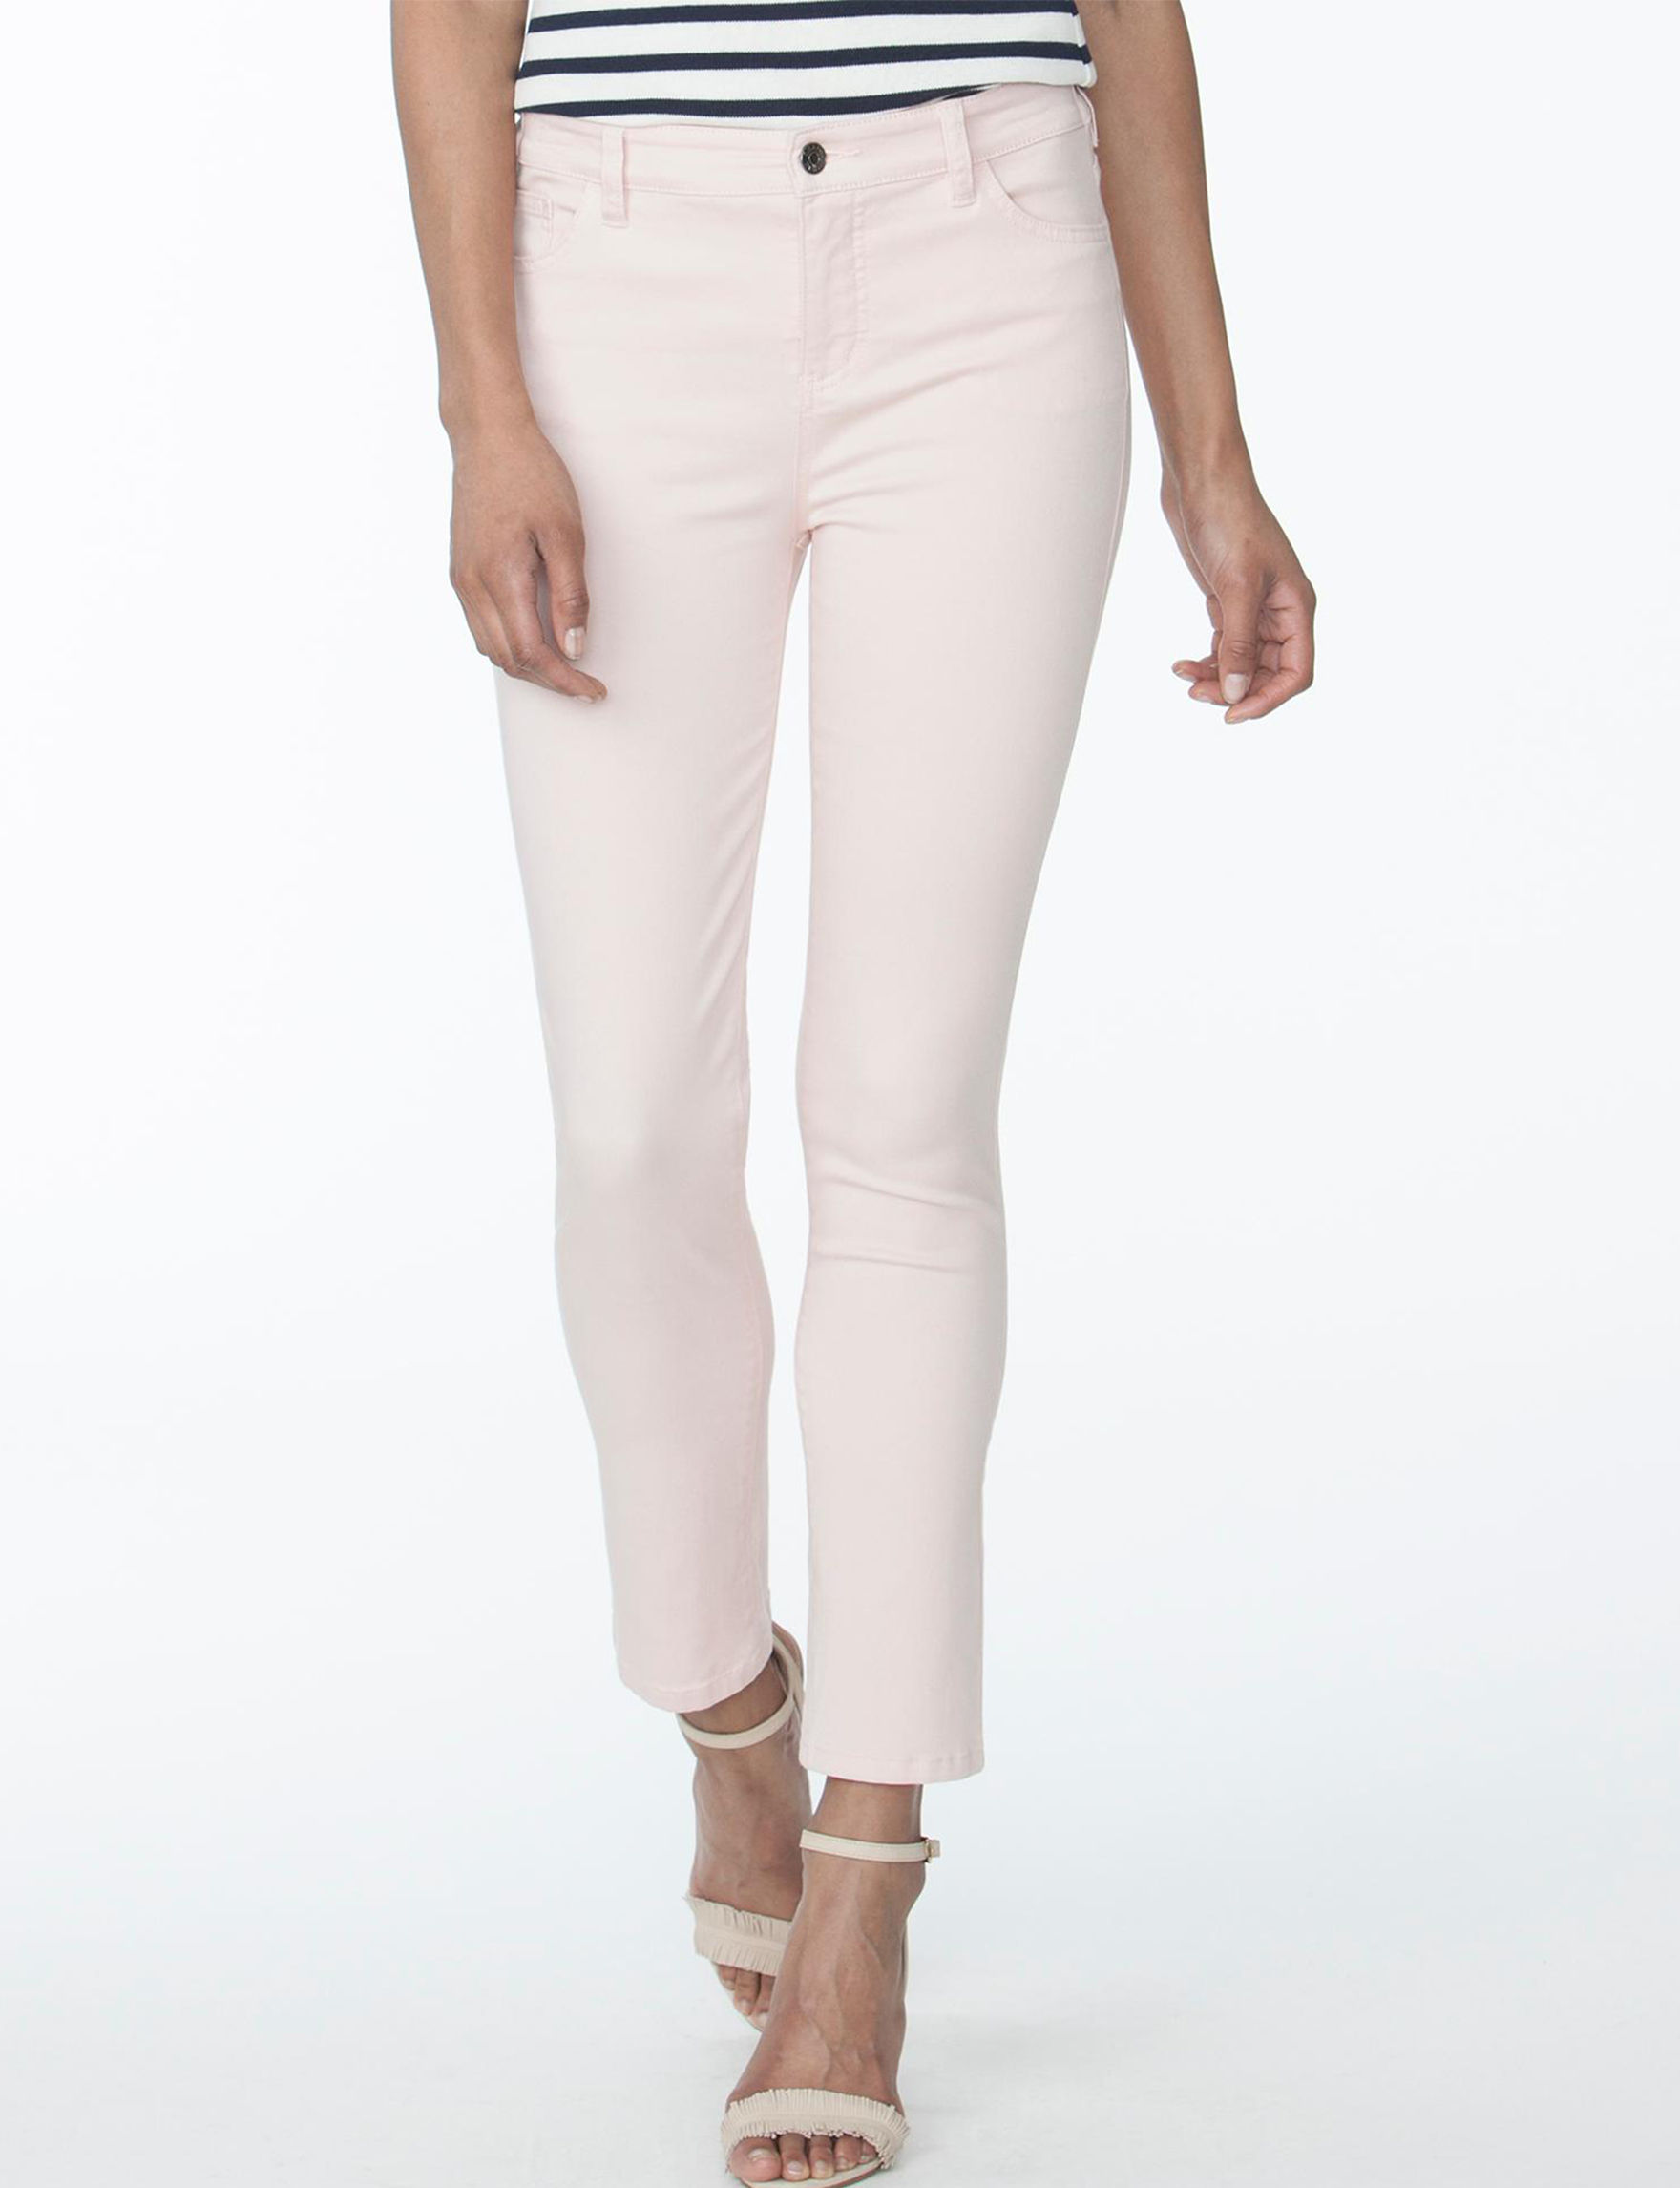 Chaps Pink Capris & Crops Skinny